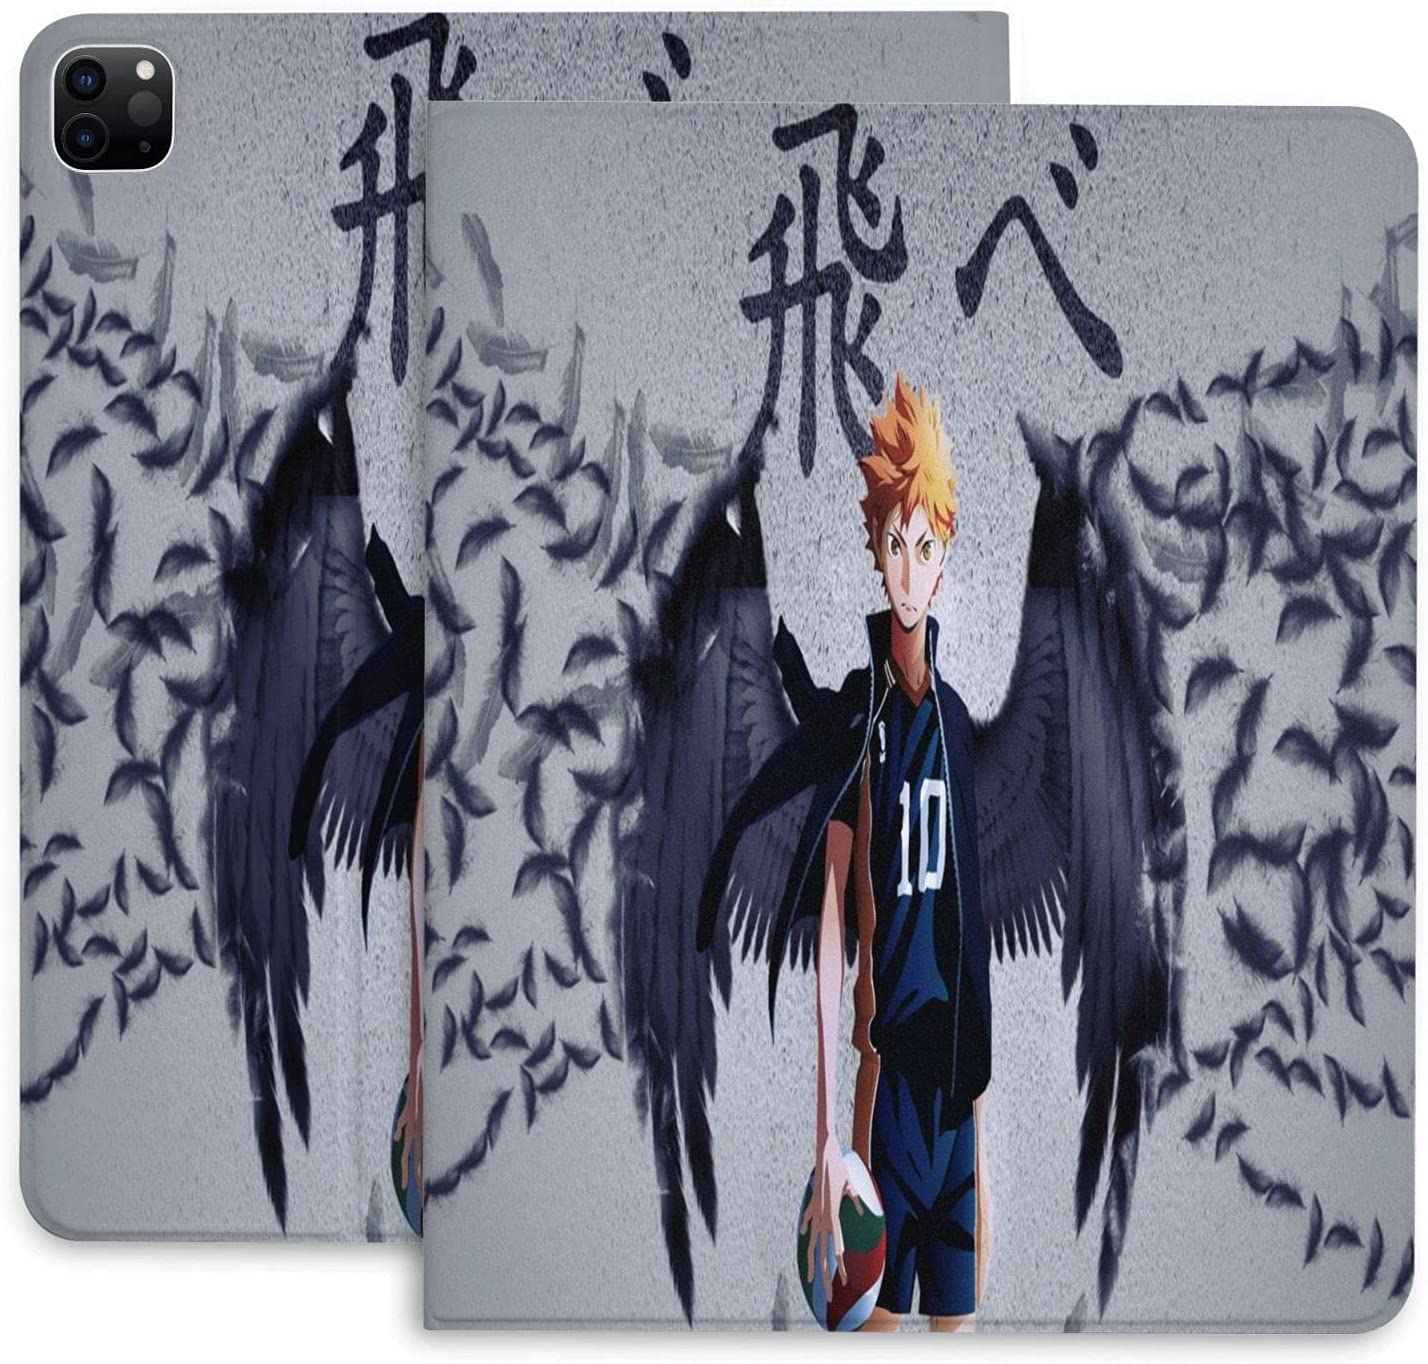 BUERYUZ Applicable New products world's highest quality popular Ipad Pro Protective Haikyuu Drop-Proof Ranking TOP18 Case A